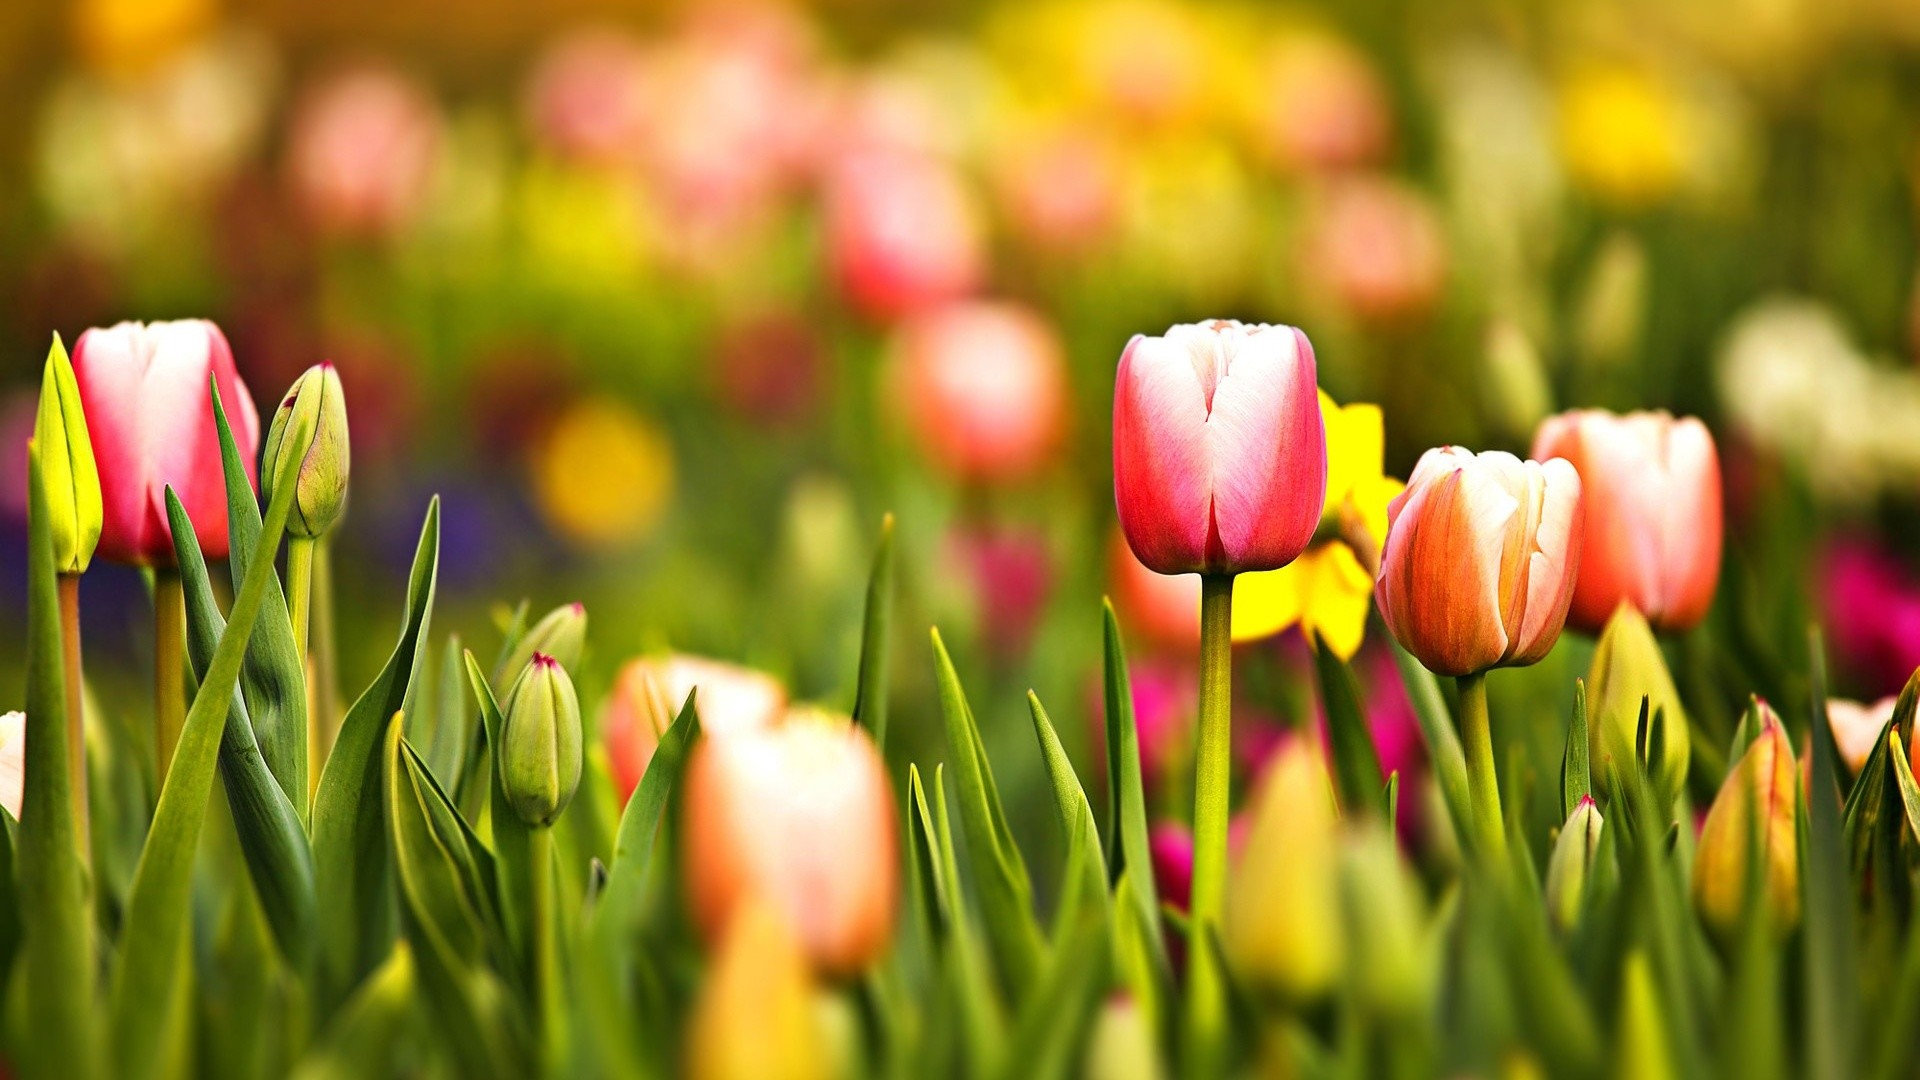 Wallpaper spring flowers decor flower floral wallpapers iphone mac .